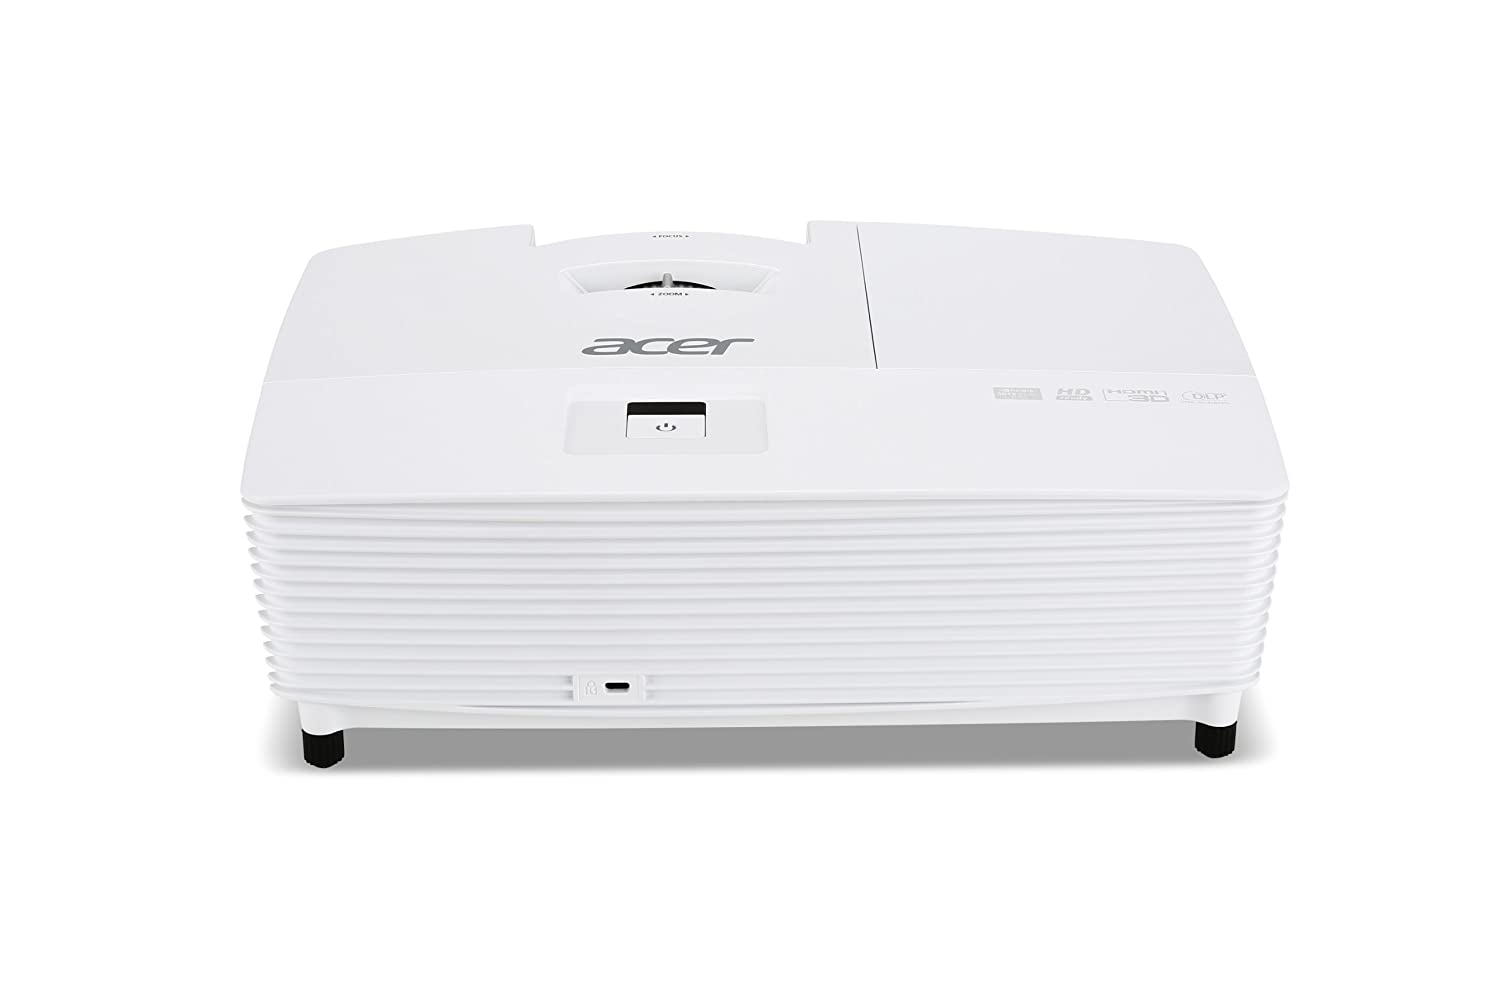 acer x110 dlp projector user manual software free download rh paintvegalo weebly com 3M DLP Projector acer x110p dlp projector manual